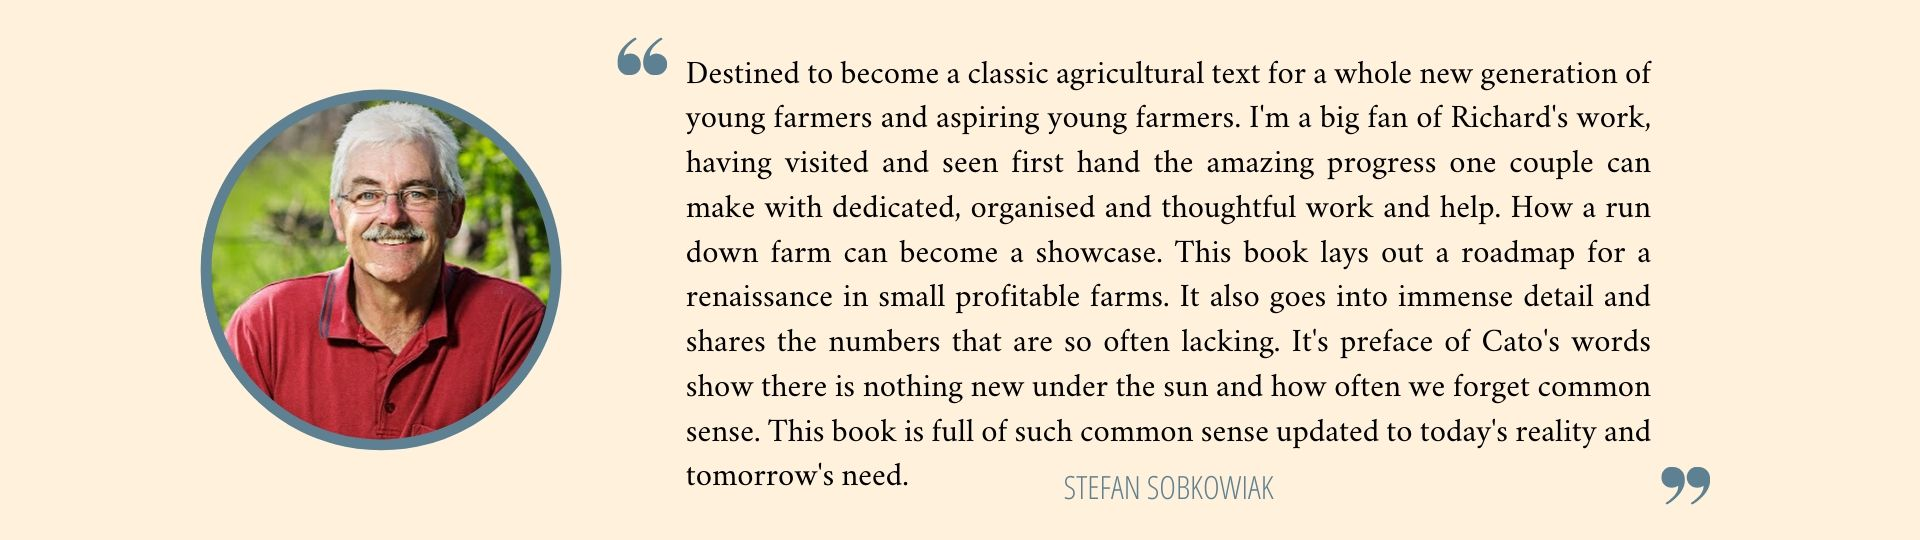 Destined to become a classic agricultural text for a whole new generation of young farmers and aspiring young farmers. I'm a big fan of Richard's work, having visited and seen first hand the amazing progress one couple can make with dedicated, organised and thoughtful work and help. How a run down farm can become a showcase. This book lays out a roadmap for a renaissance in small profitable farms. It also goes into immense detail and shares the numbers that are so often lacking. It's preface of Cato's words show there is nothing new under the sun and how often we forget common sense. This book is full of such common sense updated to today's reality and tomorrow's need. - Stefan Sobkowiak